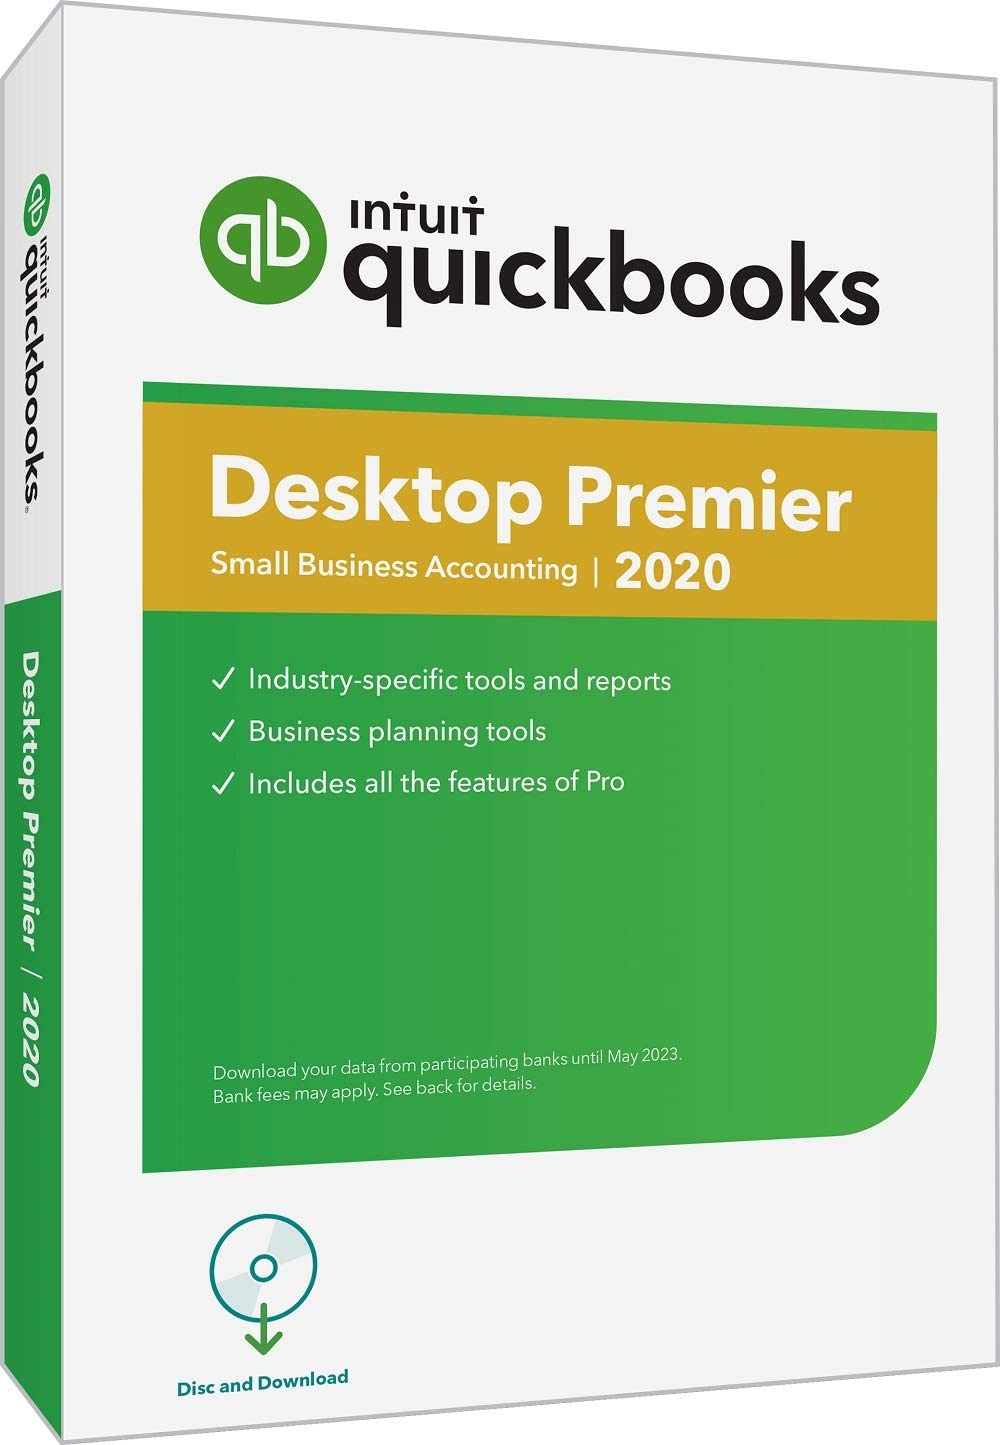 QuickBooks Desktop Premier 2020 Discount Coupon Code